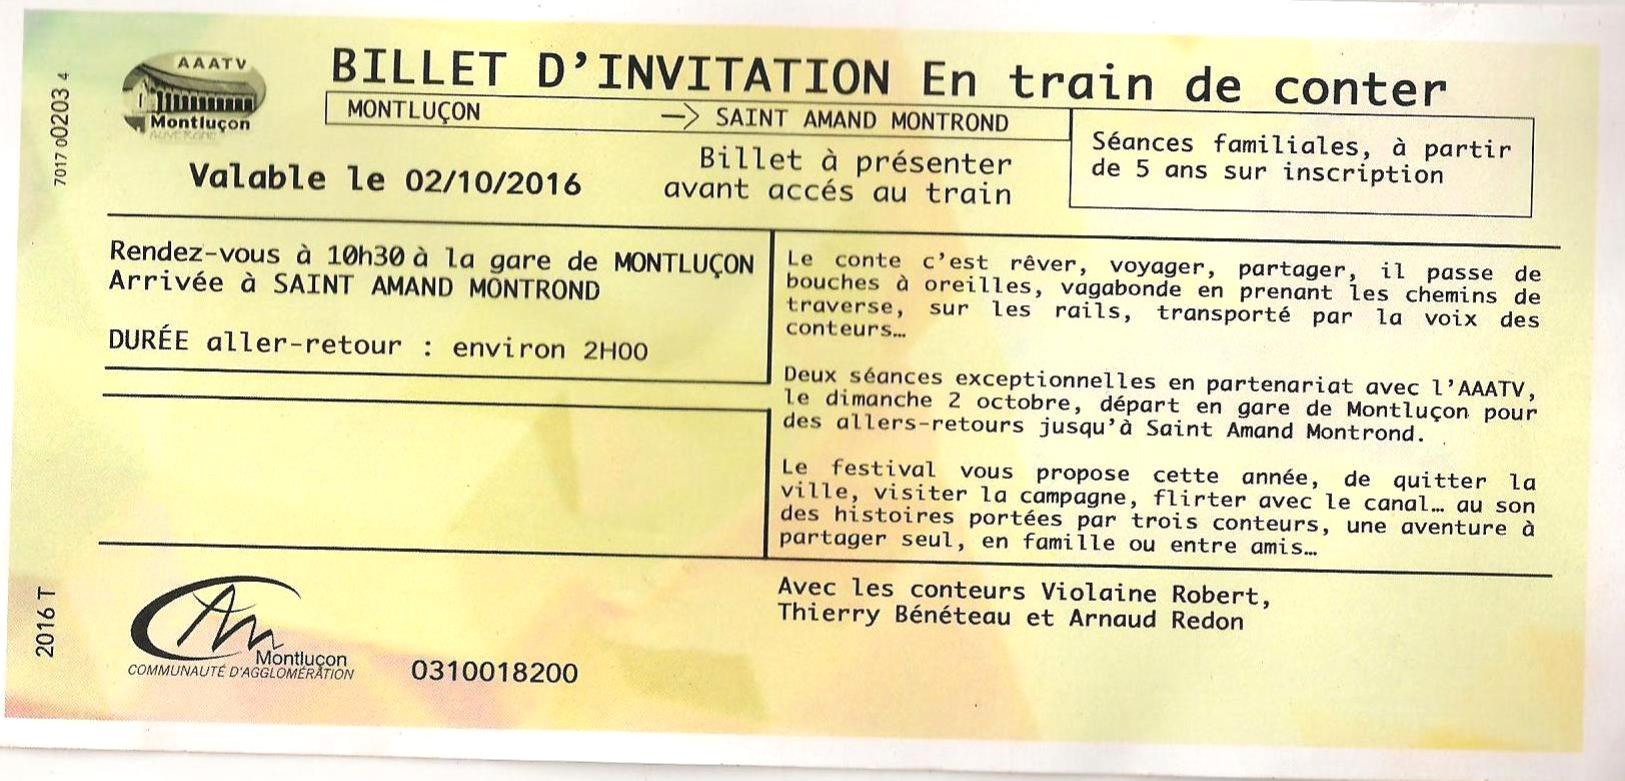 Billet d'invitation